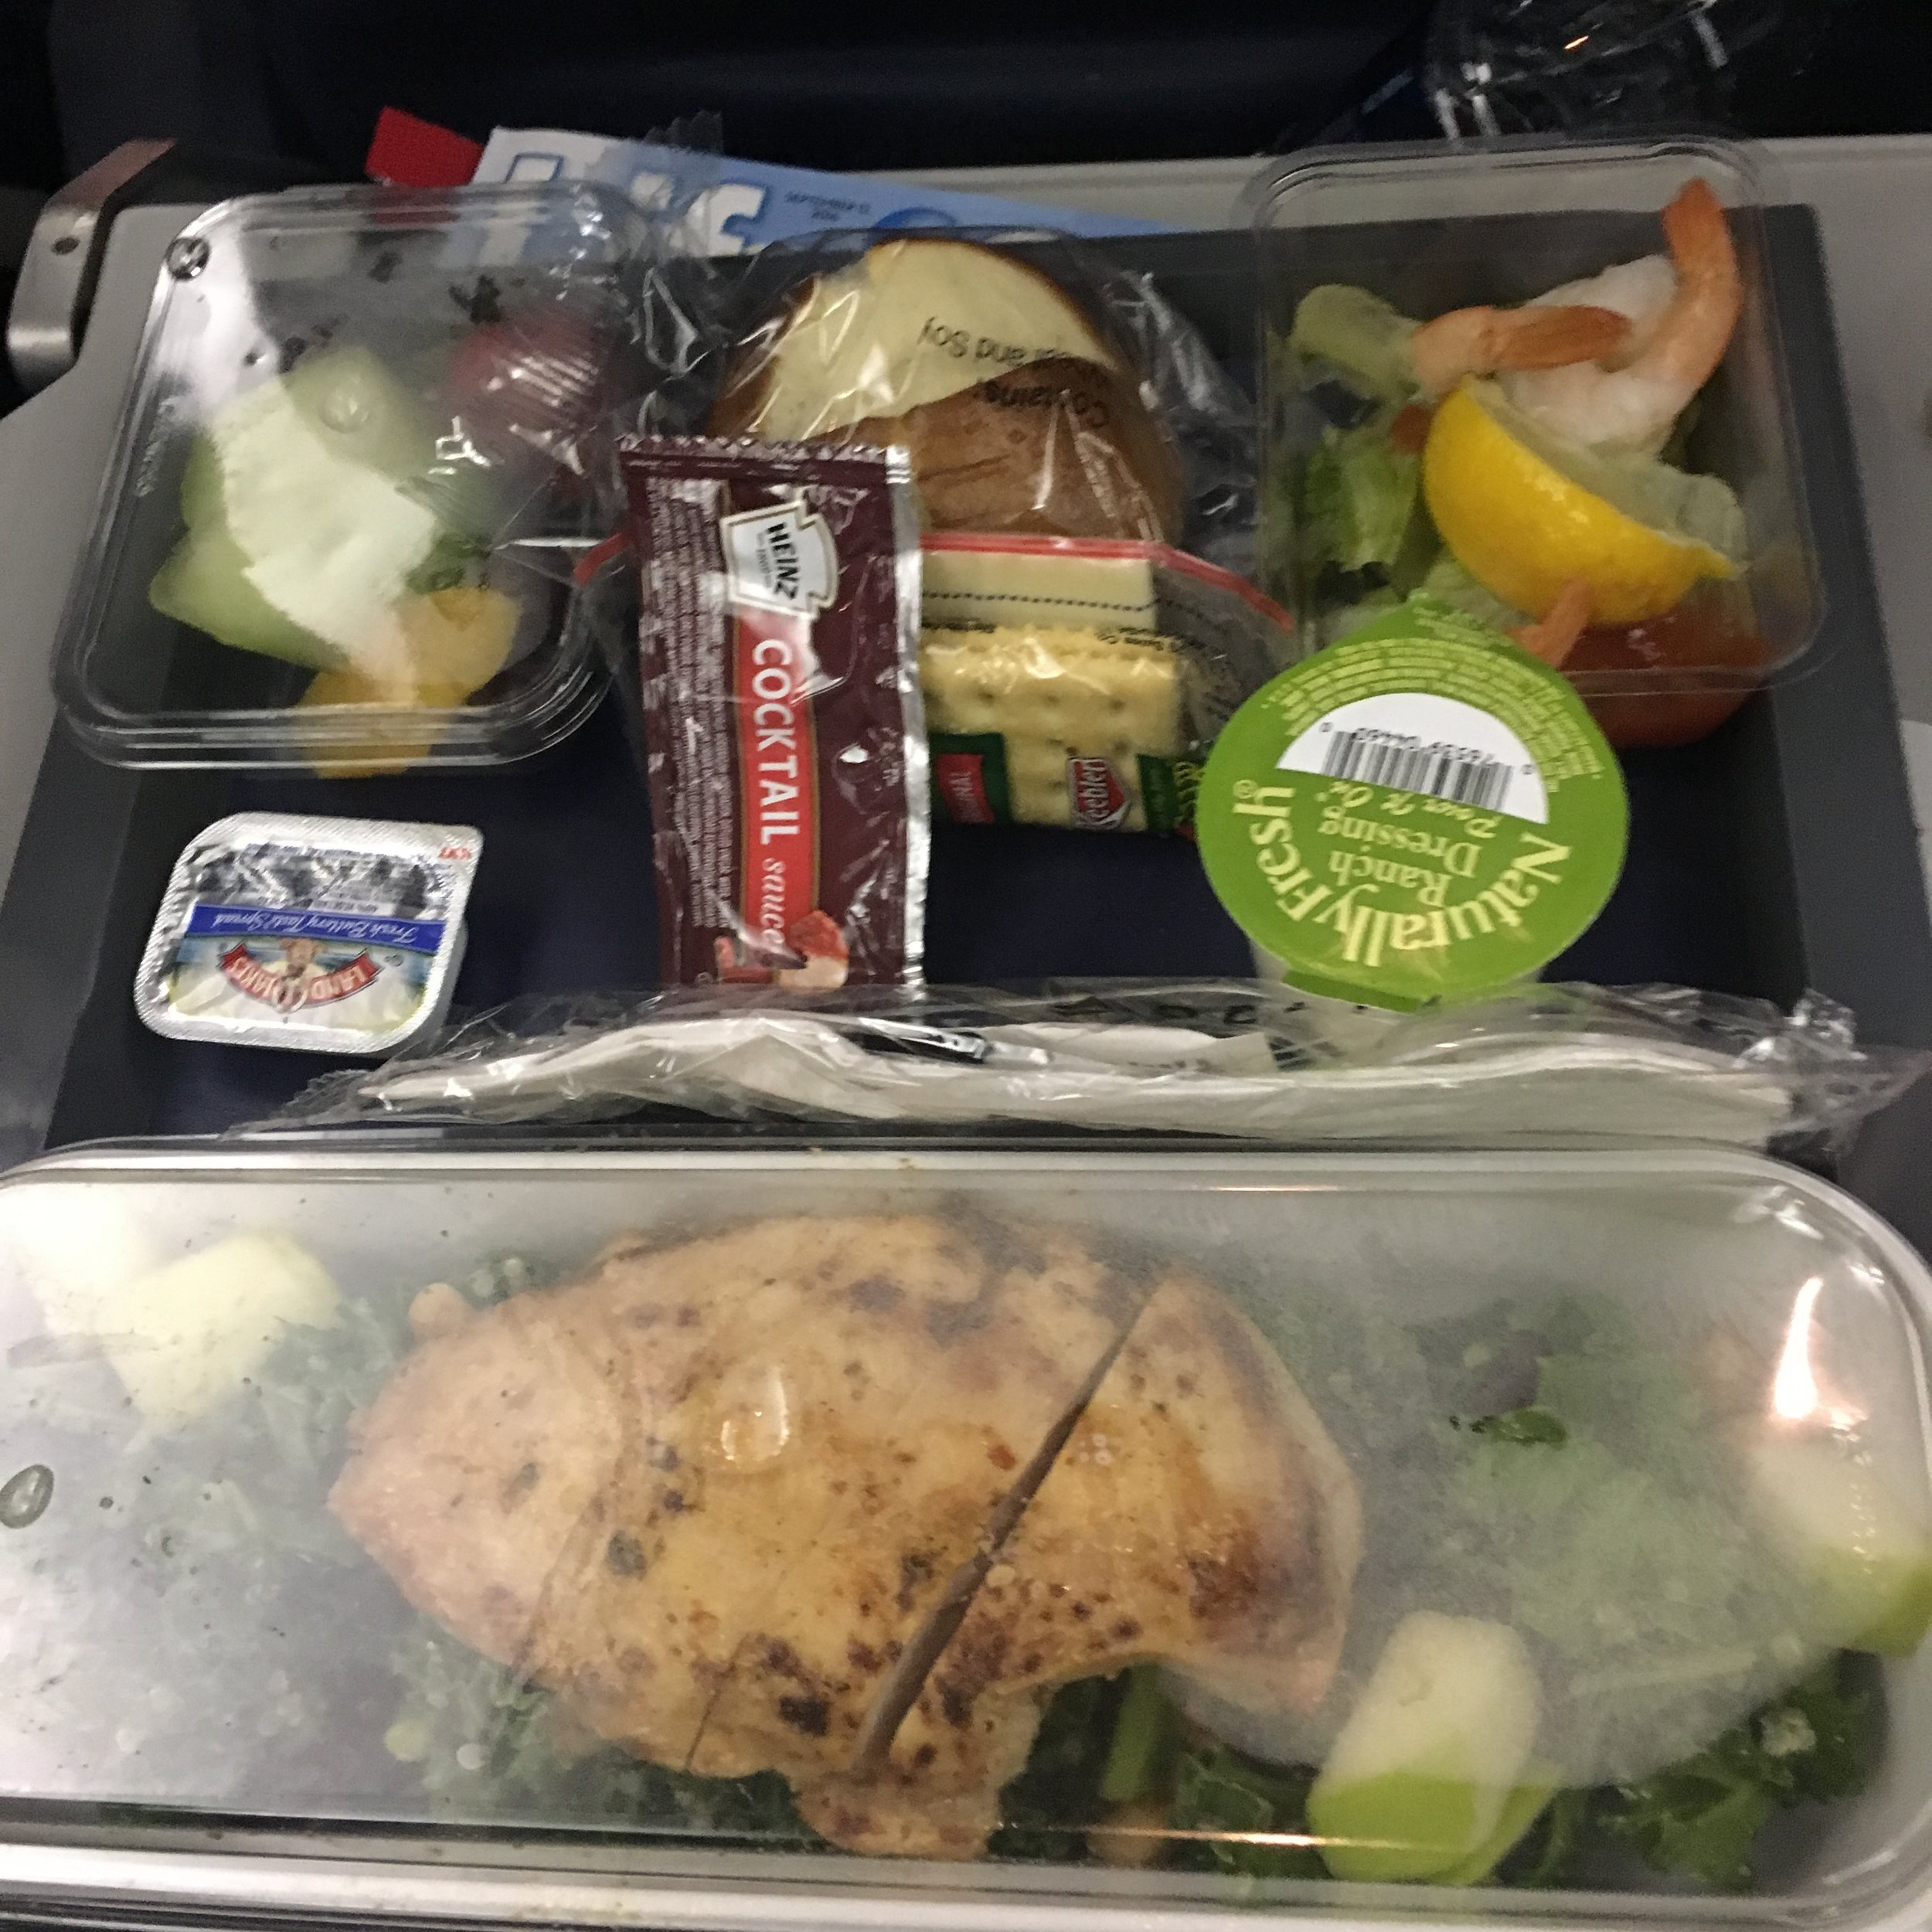 airplane meals aren't so bad...